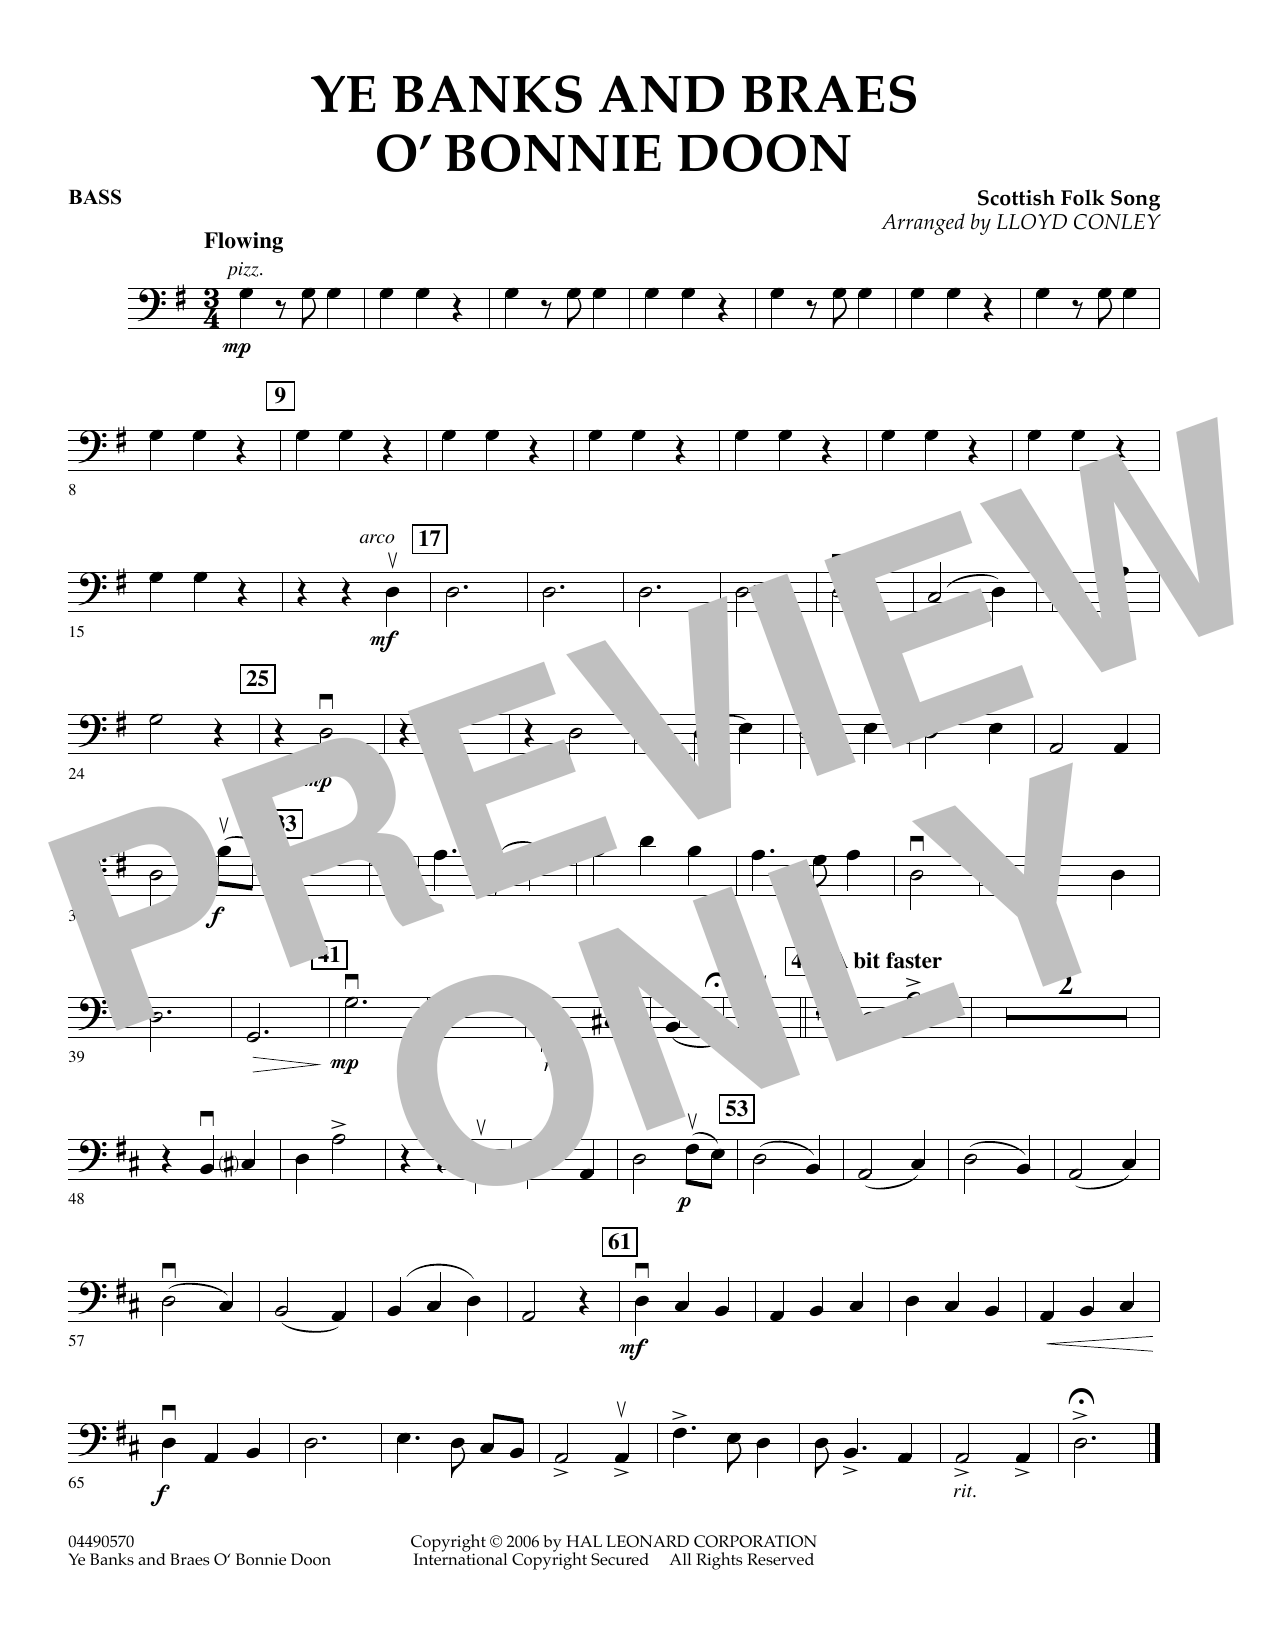 Lloyd Conley Ye Banks and Braes O' Bonnie Doon - Bass sheet music preview music notes and score for Orchestra including 1 page(s)